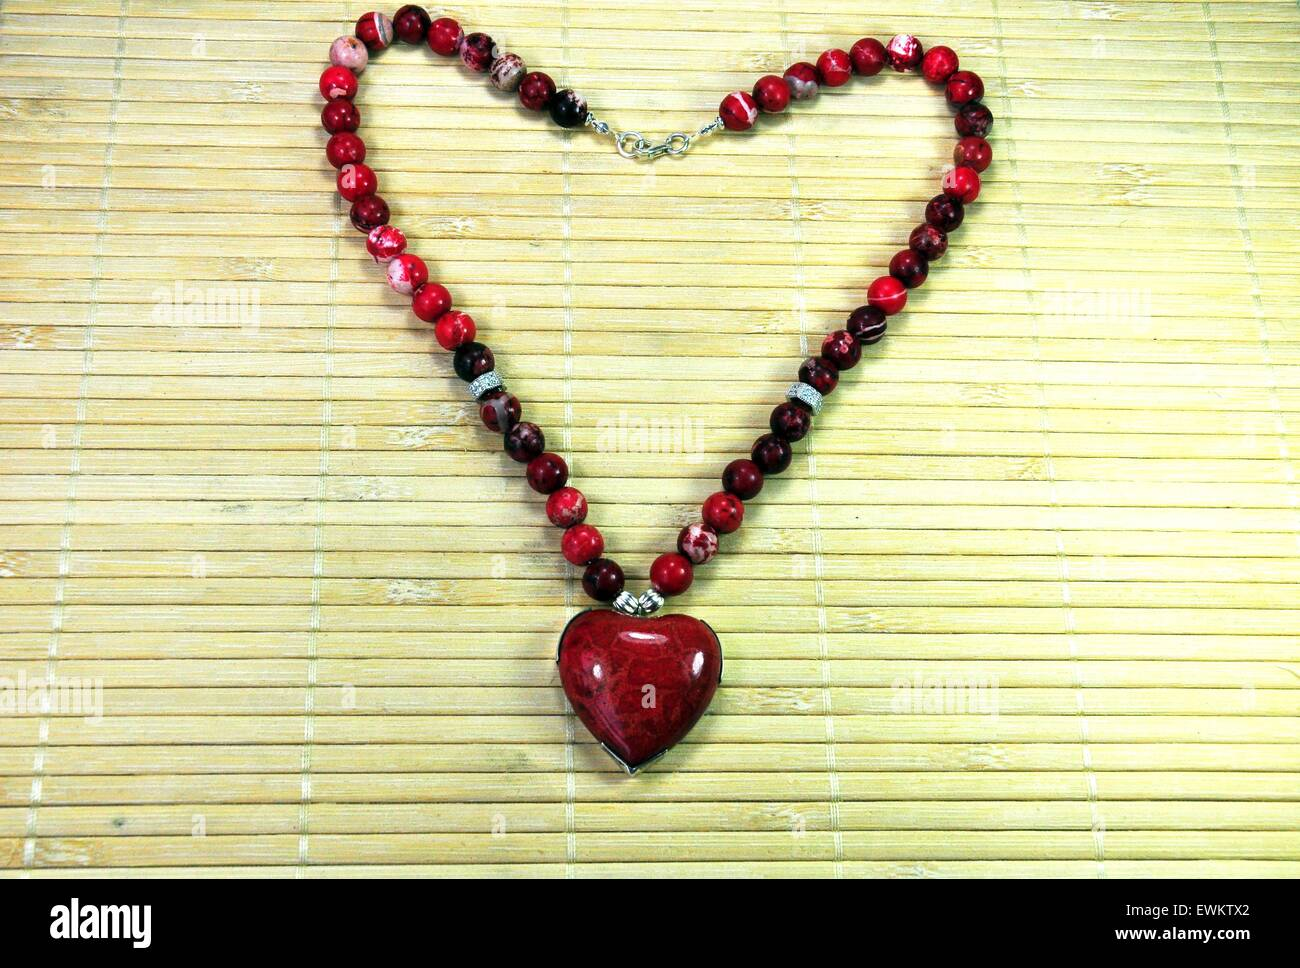 Red necklace with a large heart shaped pendant Stock Photo